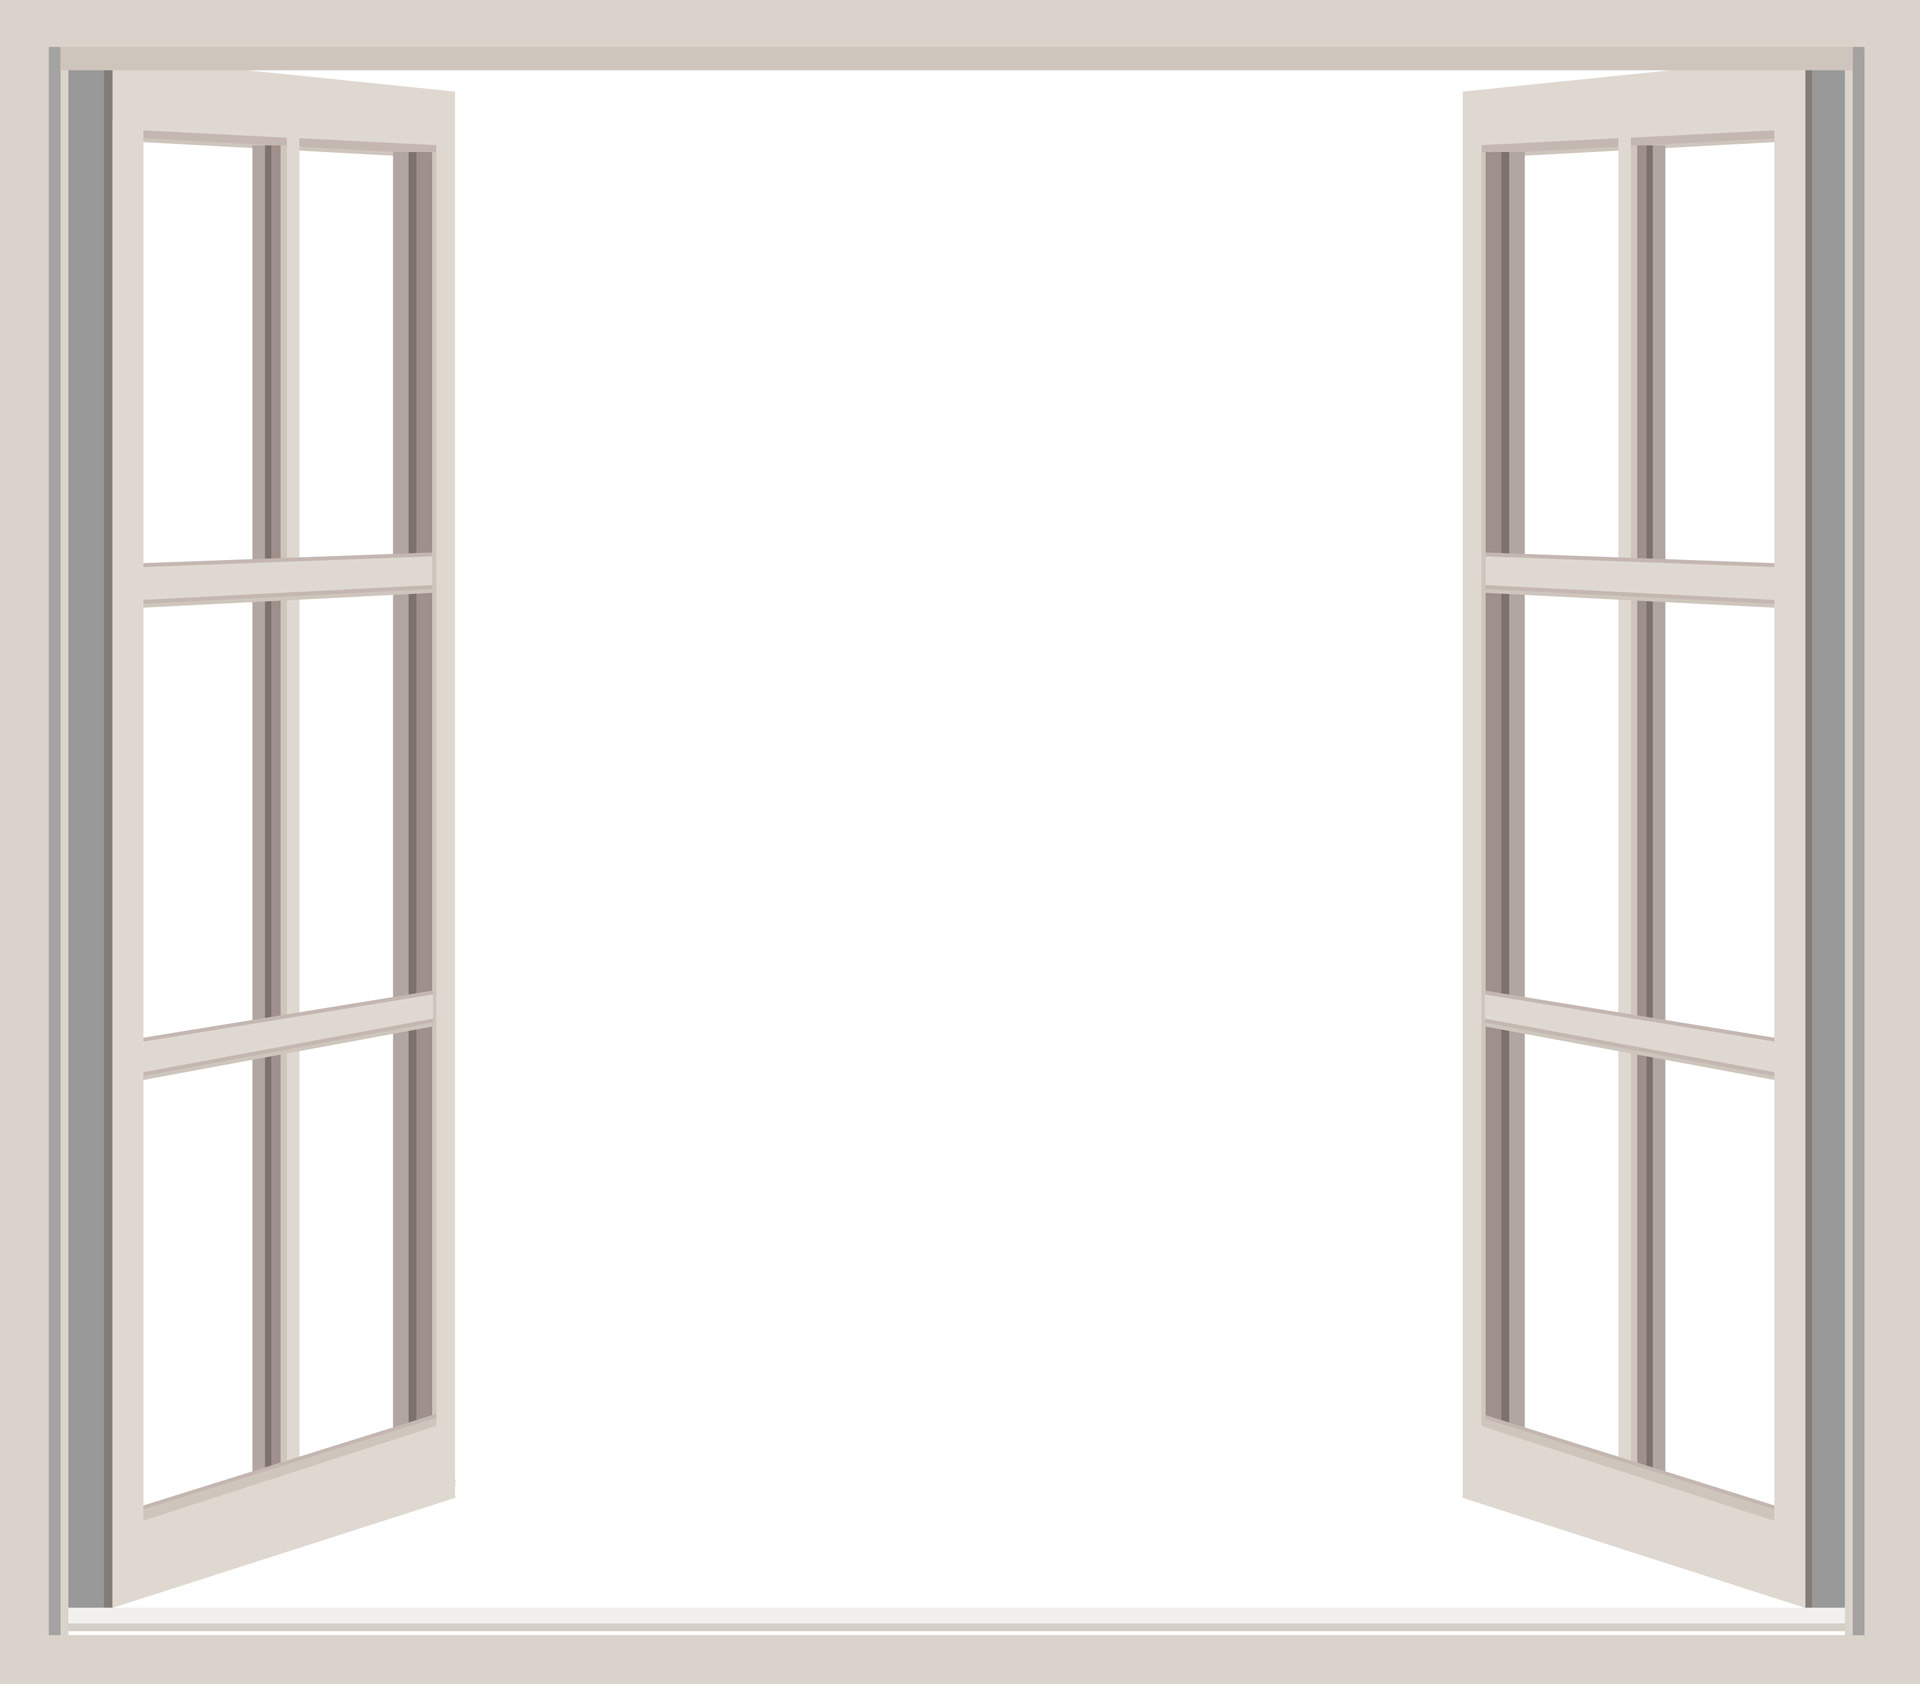 Window frame clipart no background clipart library library Free Window Cliparts, Download Free Clip Art, Free Clip Art on ... clipart library library